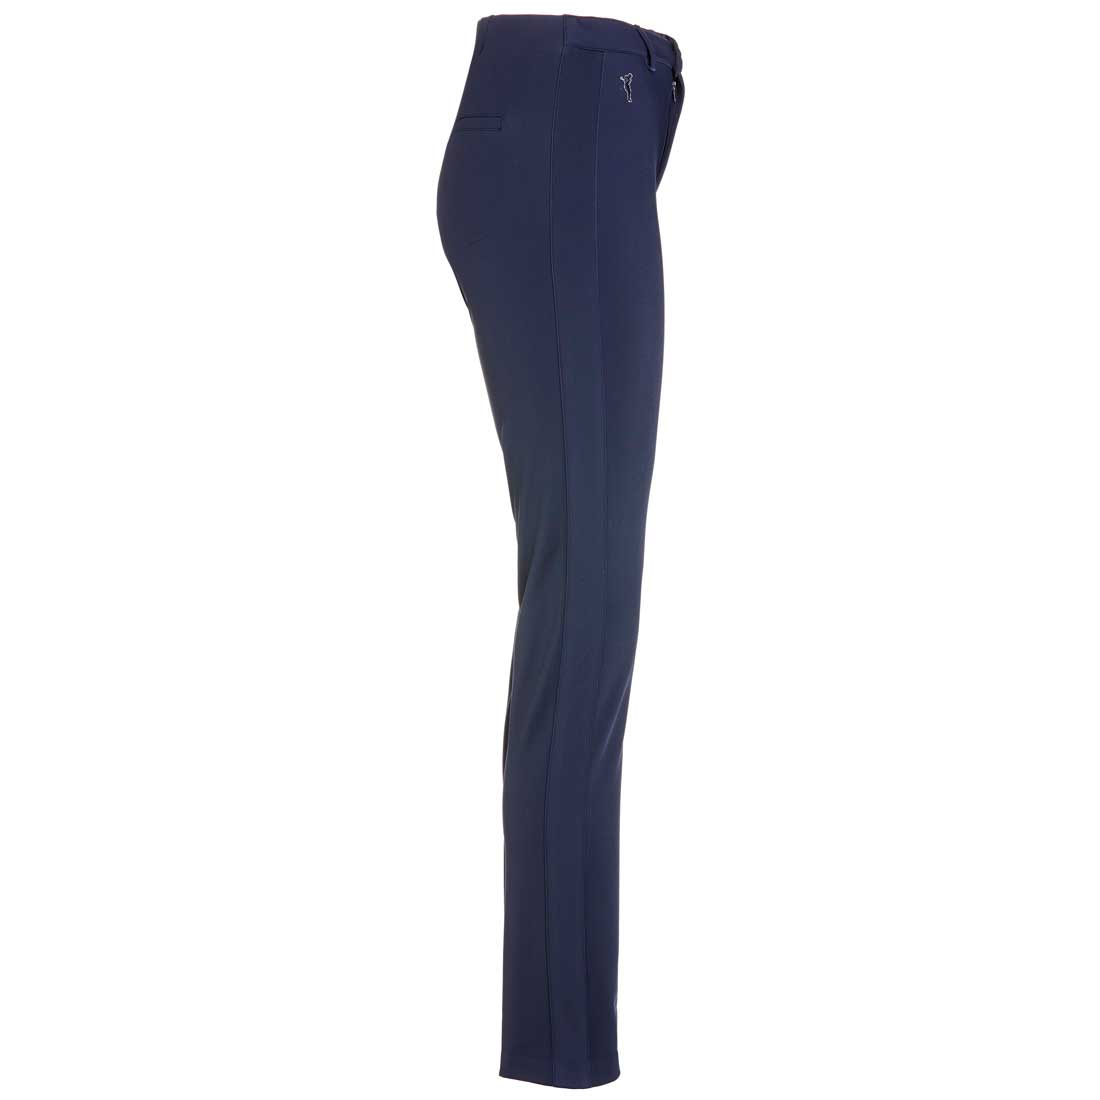 Sehr bequeme 4-Way-Stretch Damen Golfhose in Slim Fit long